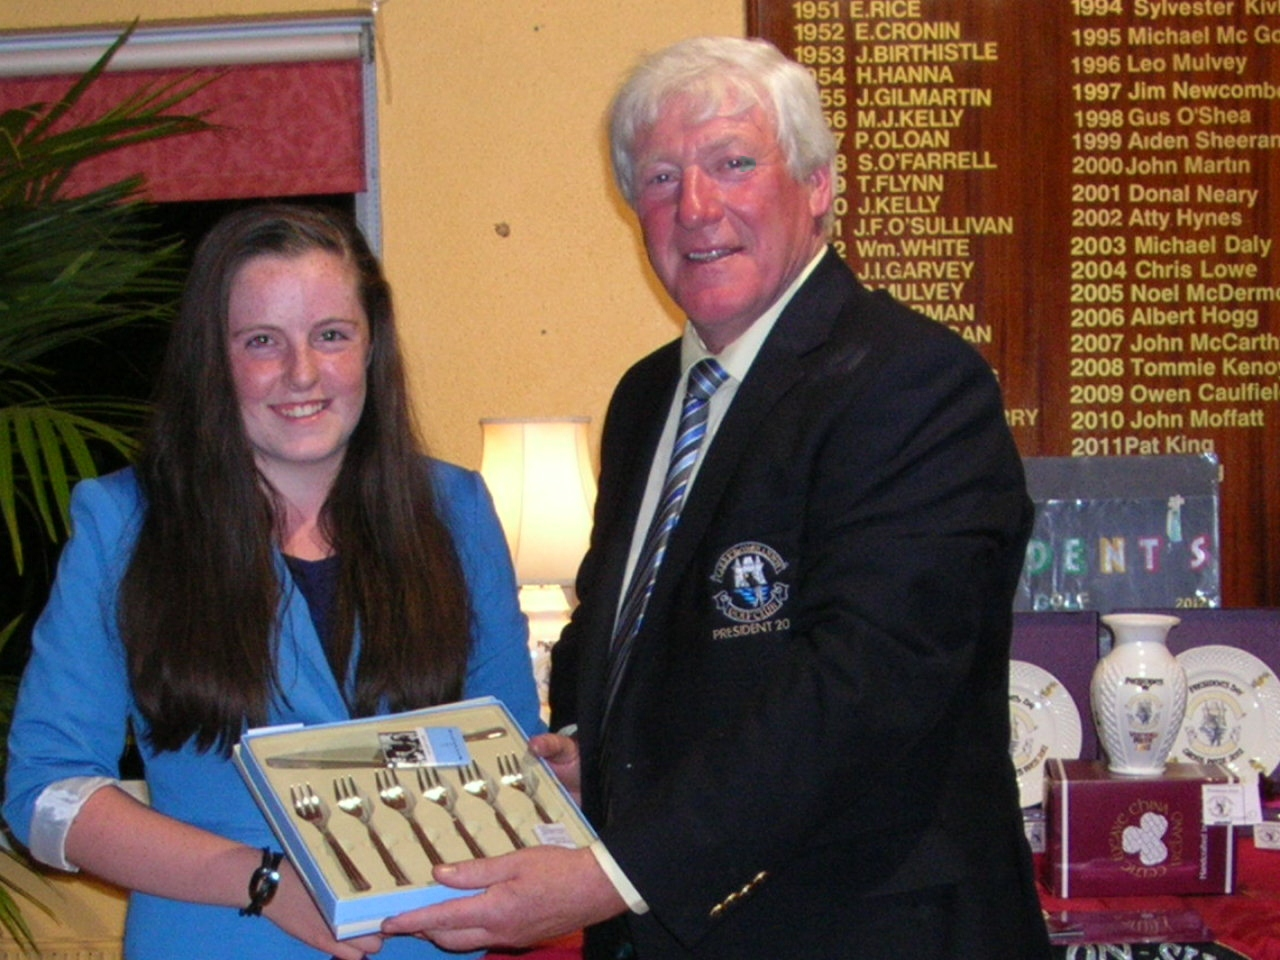 President PJ Sharkey presents Eimear Gallagher with 3rd Prize